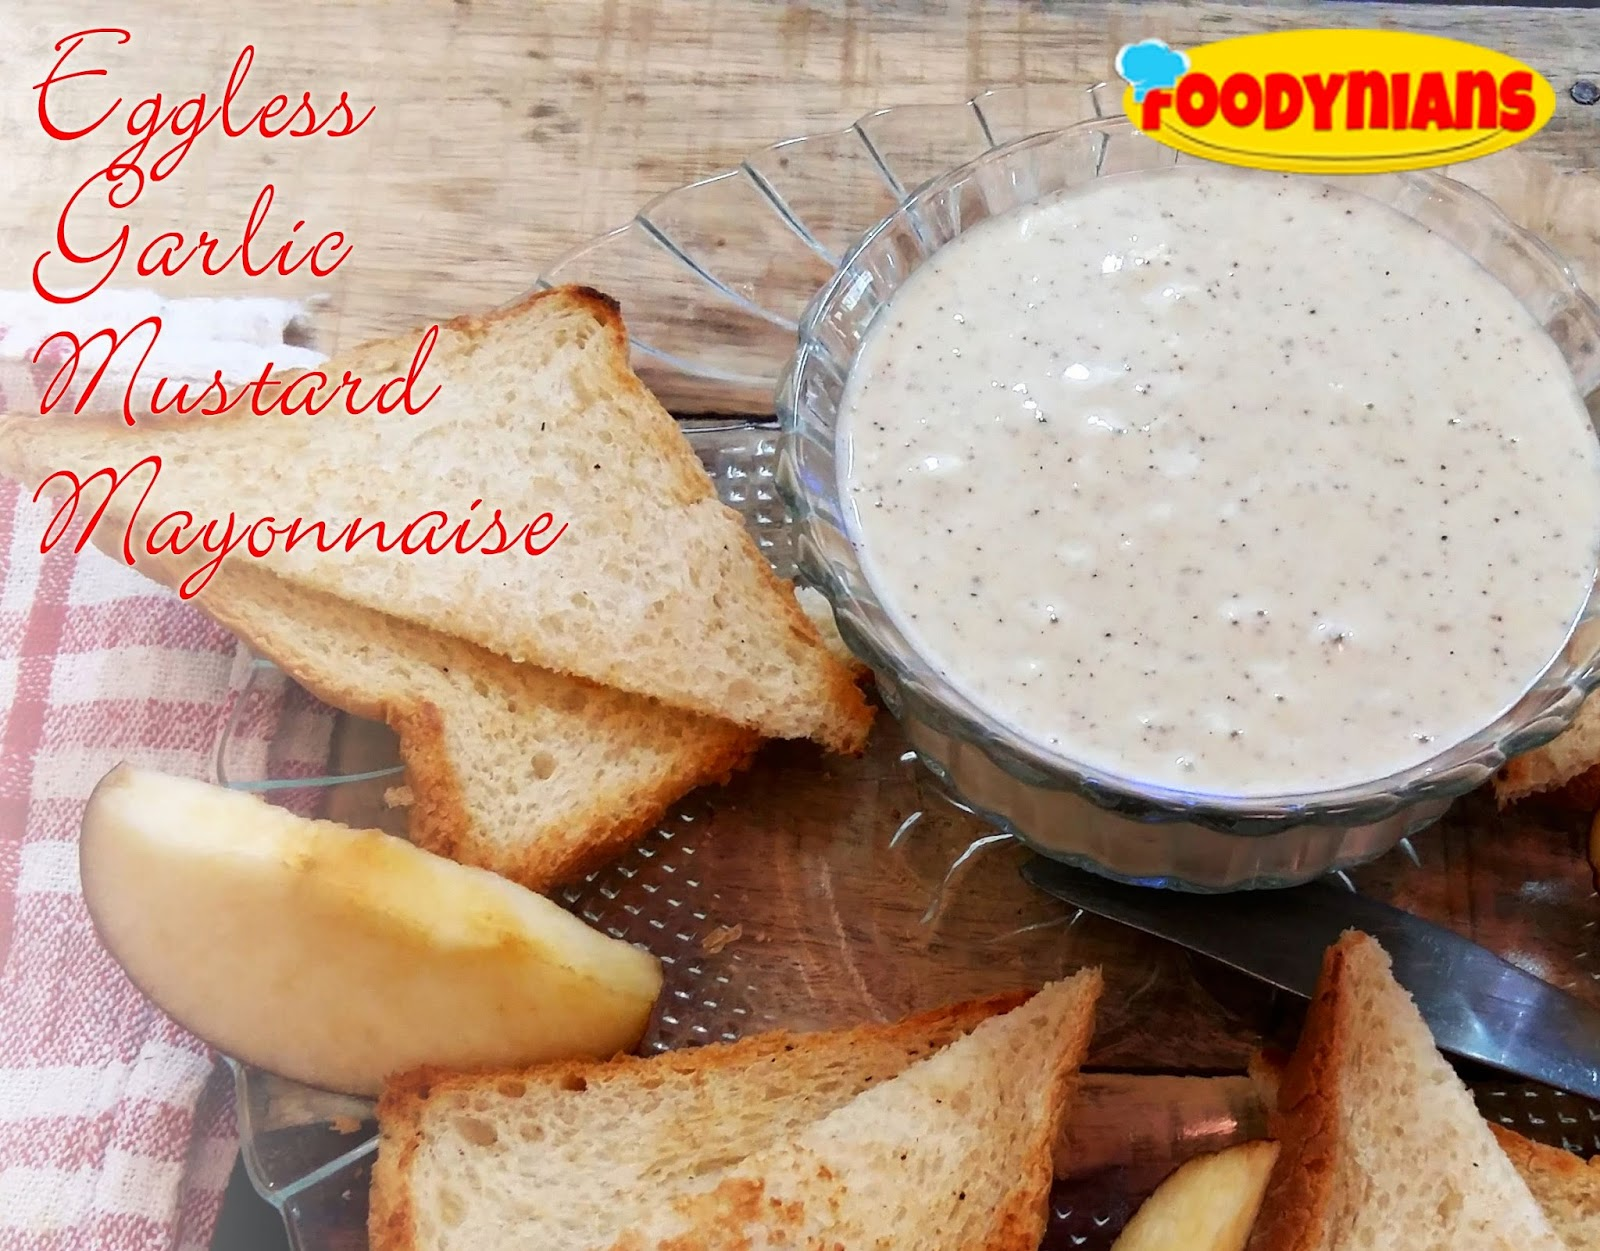 eggless-garlic-mustard-mayonnaise